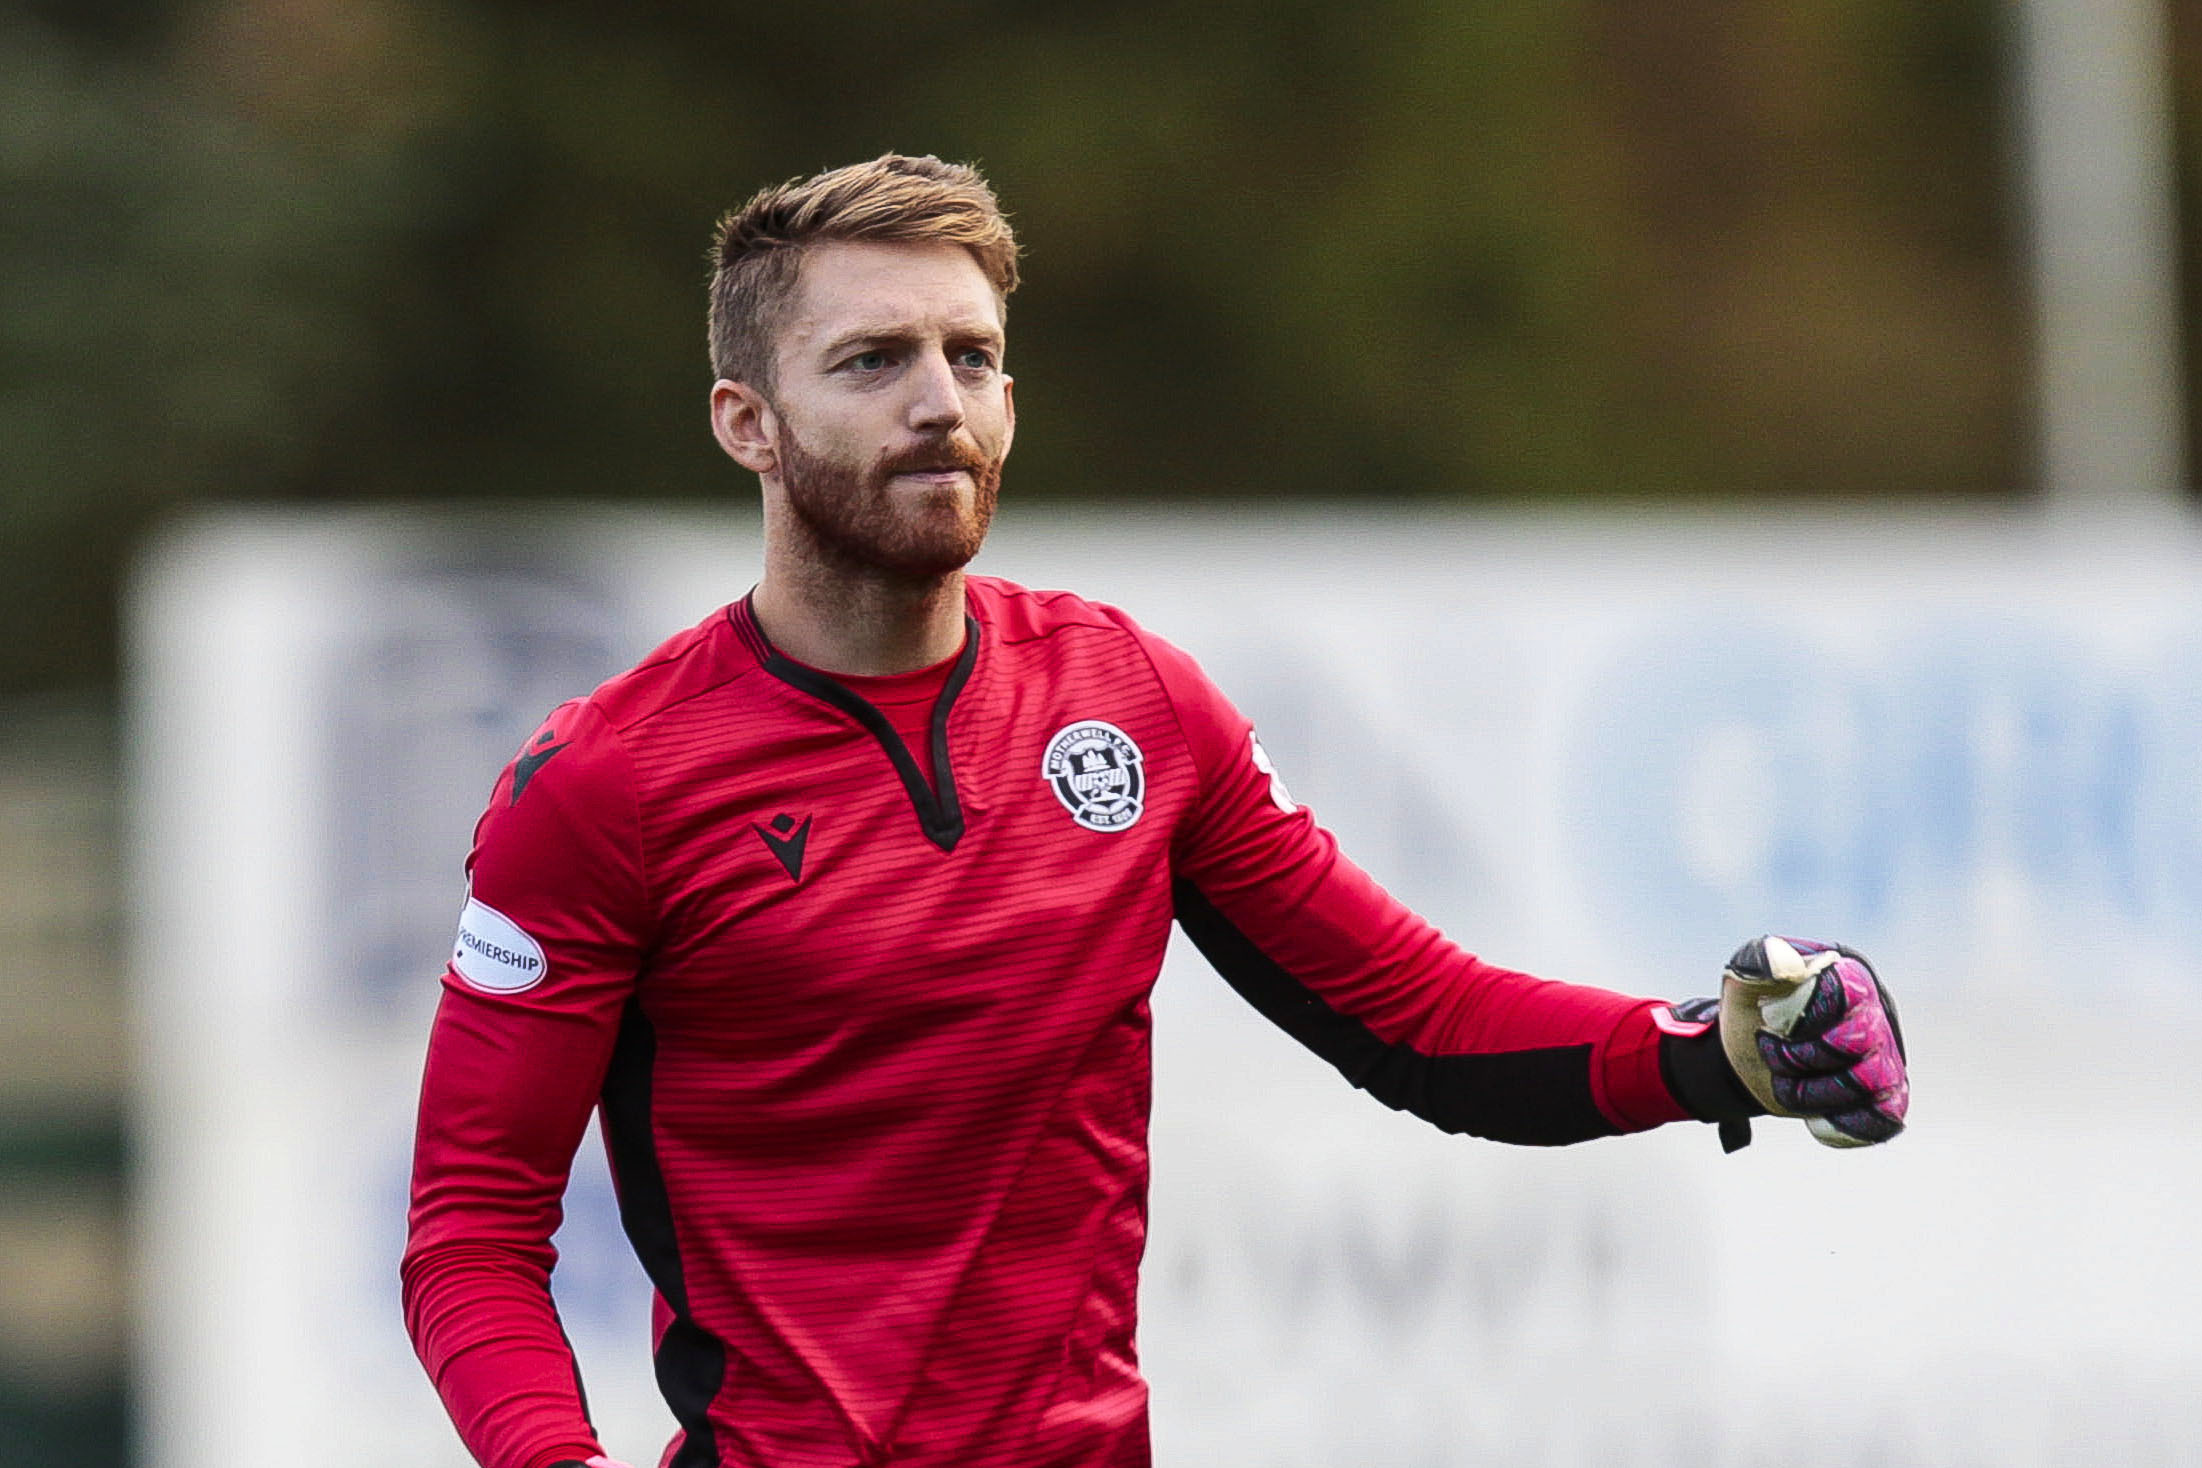 Motherwell goalkeeper Mark Gillespie gives contract update